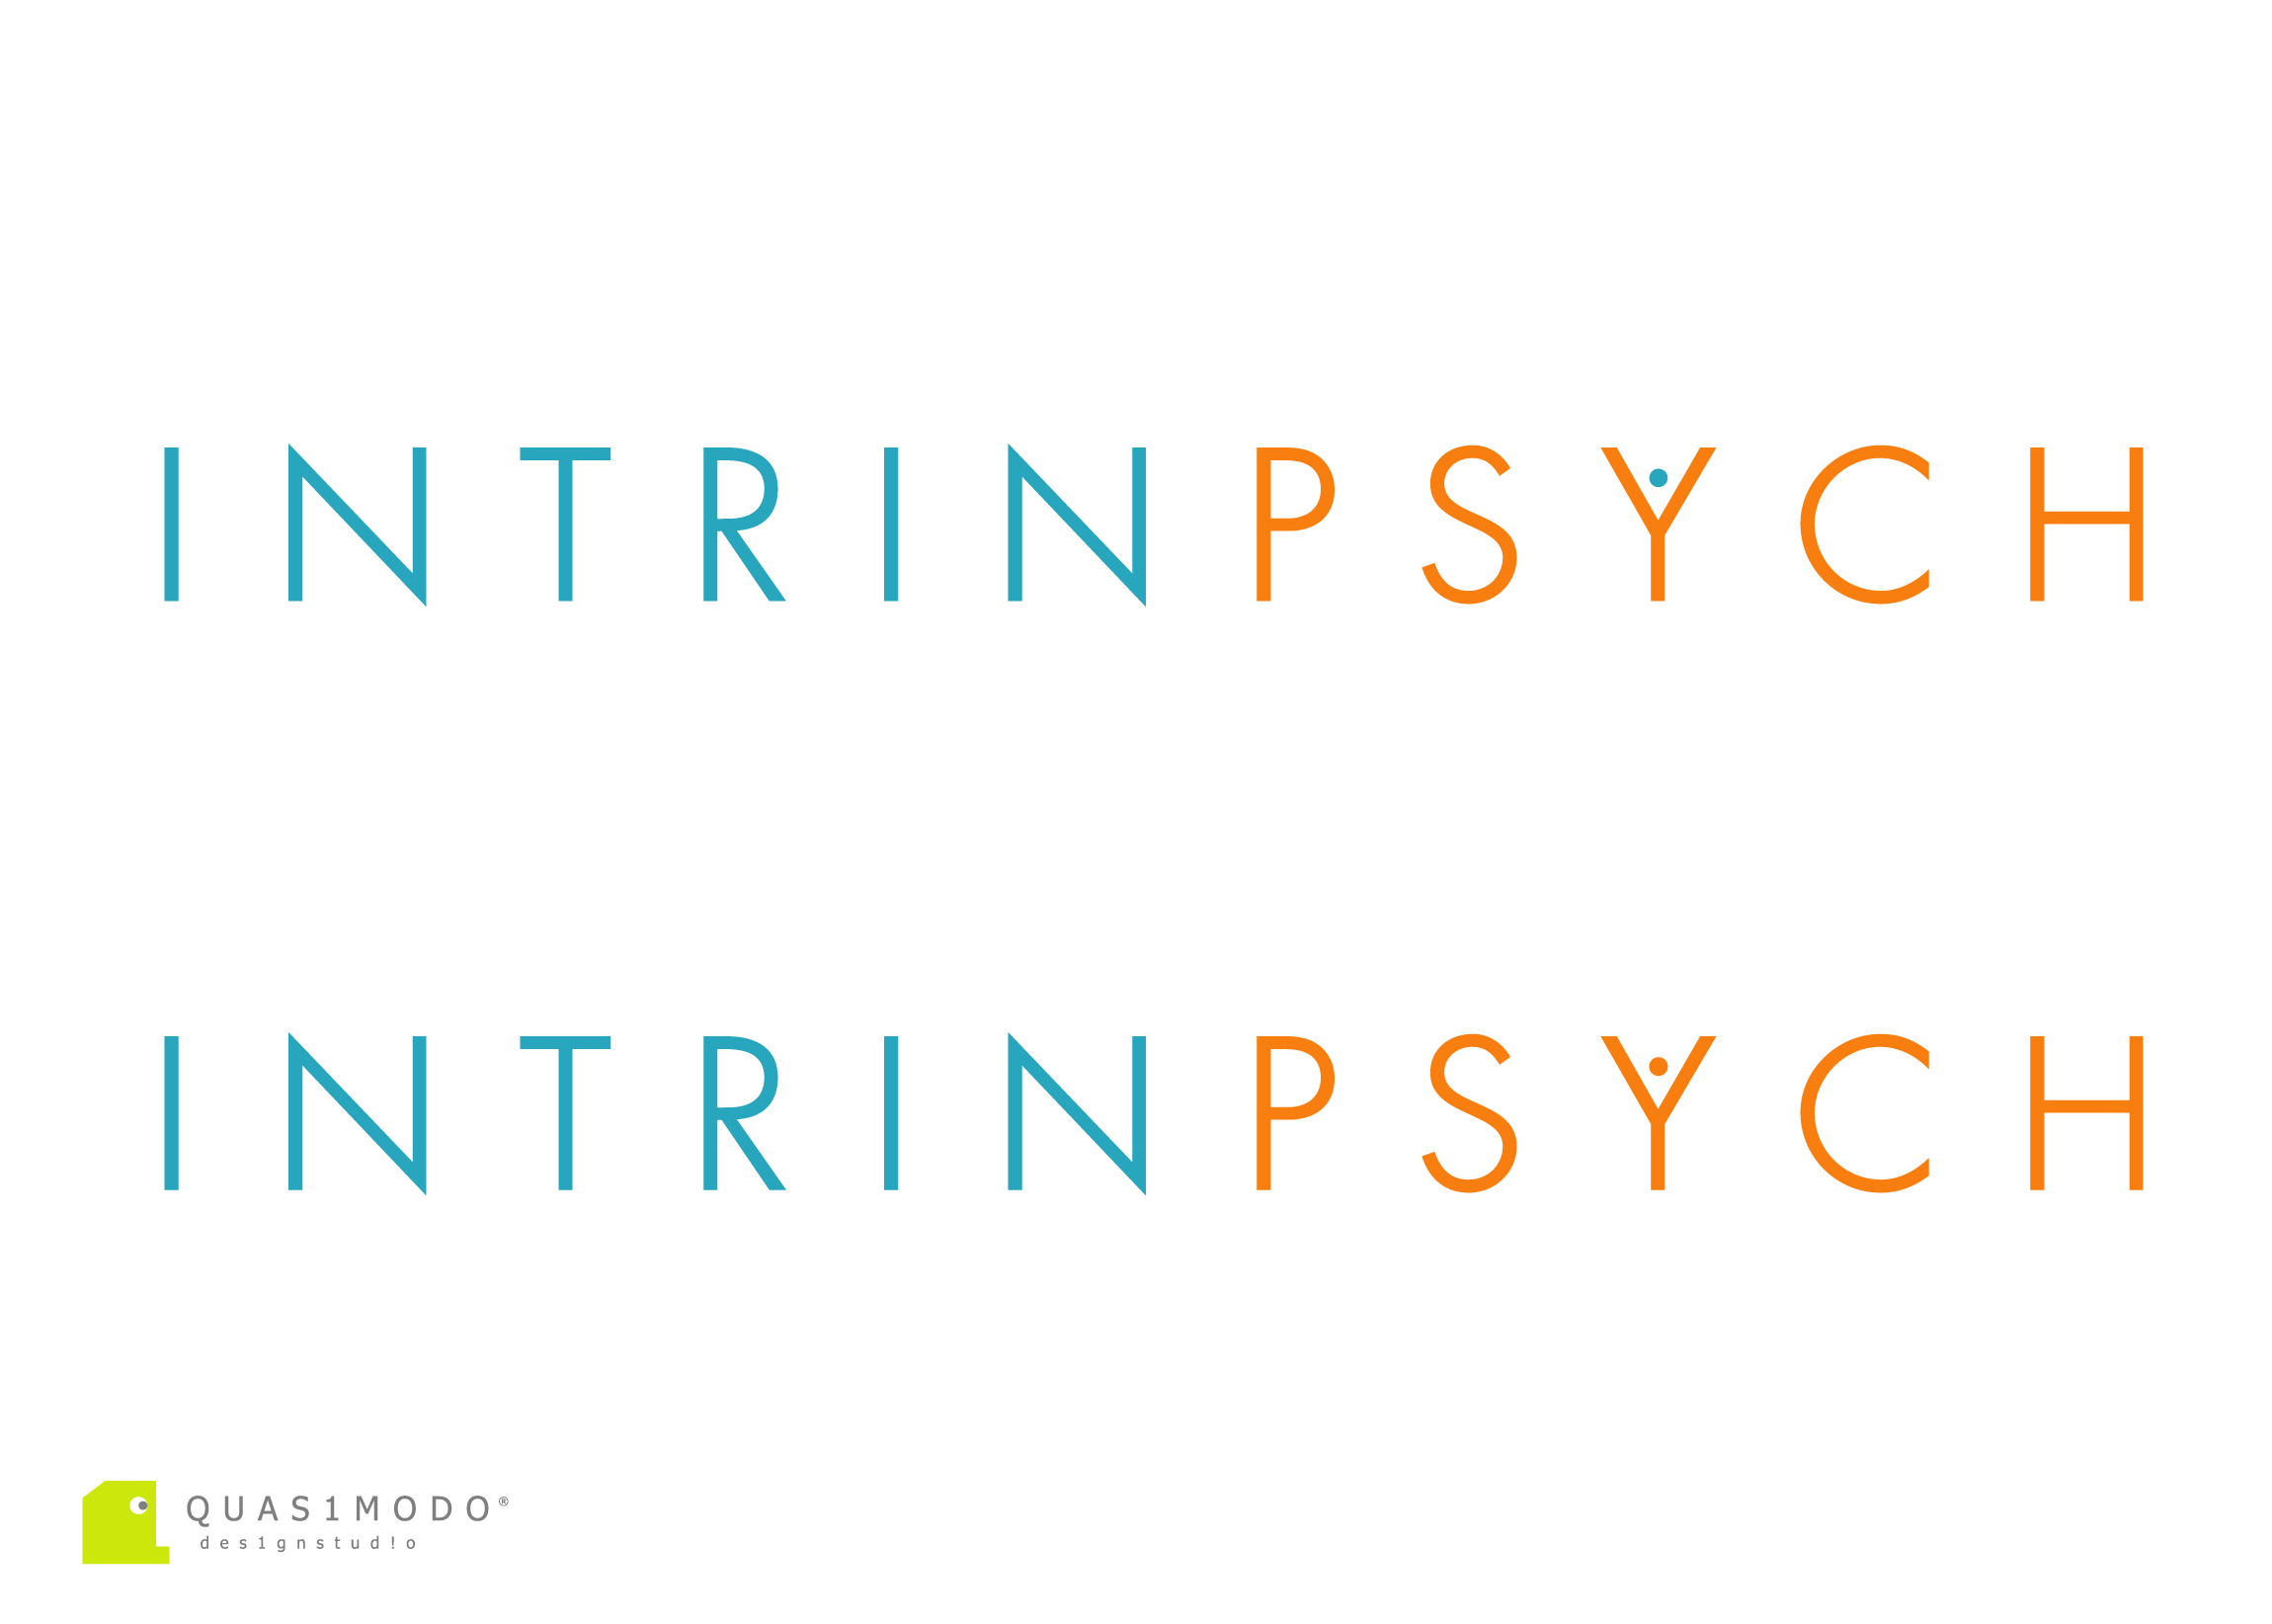 Logo Design by DIMITRIOS PAPADOPOULOS - Entry No. 172 in the Logo Design Contest New Logo Design for IntrinPsych.